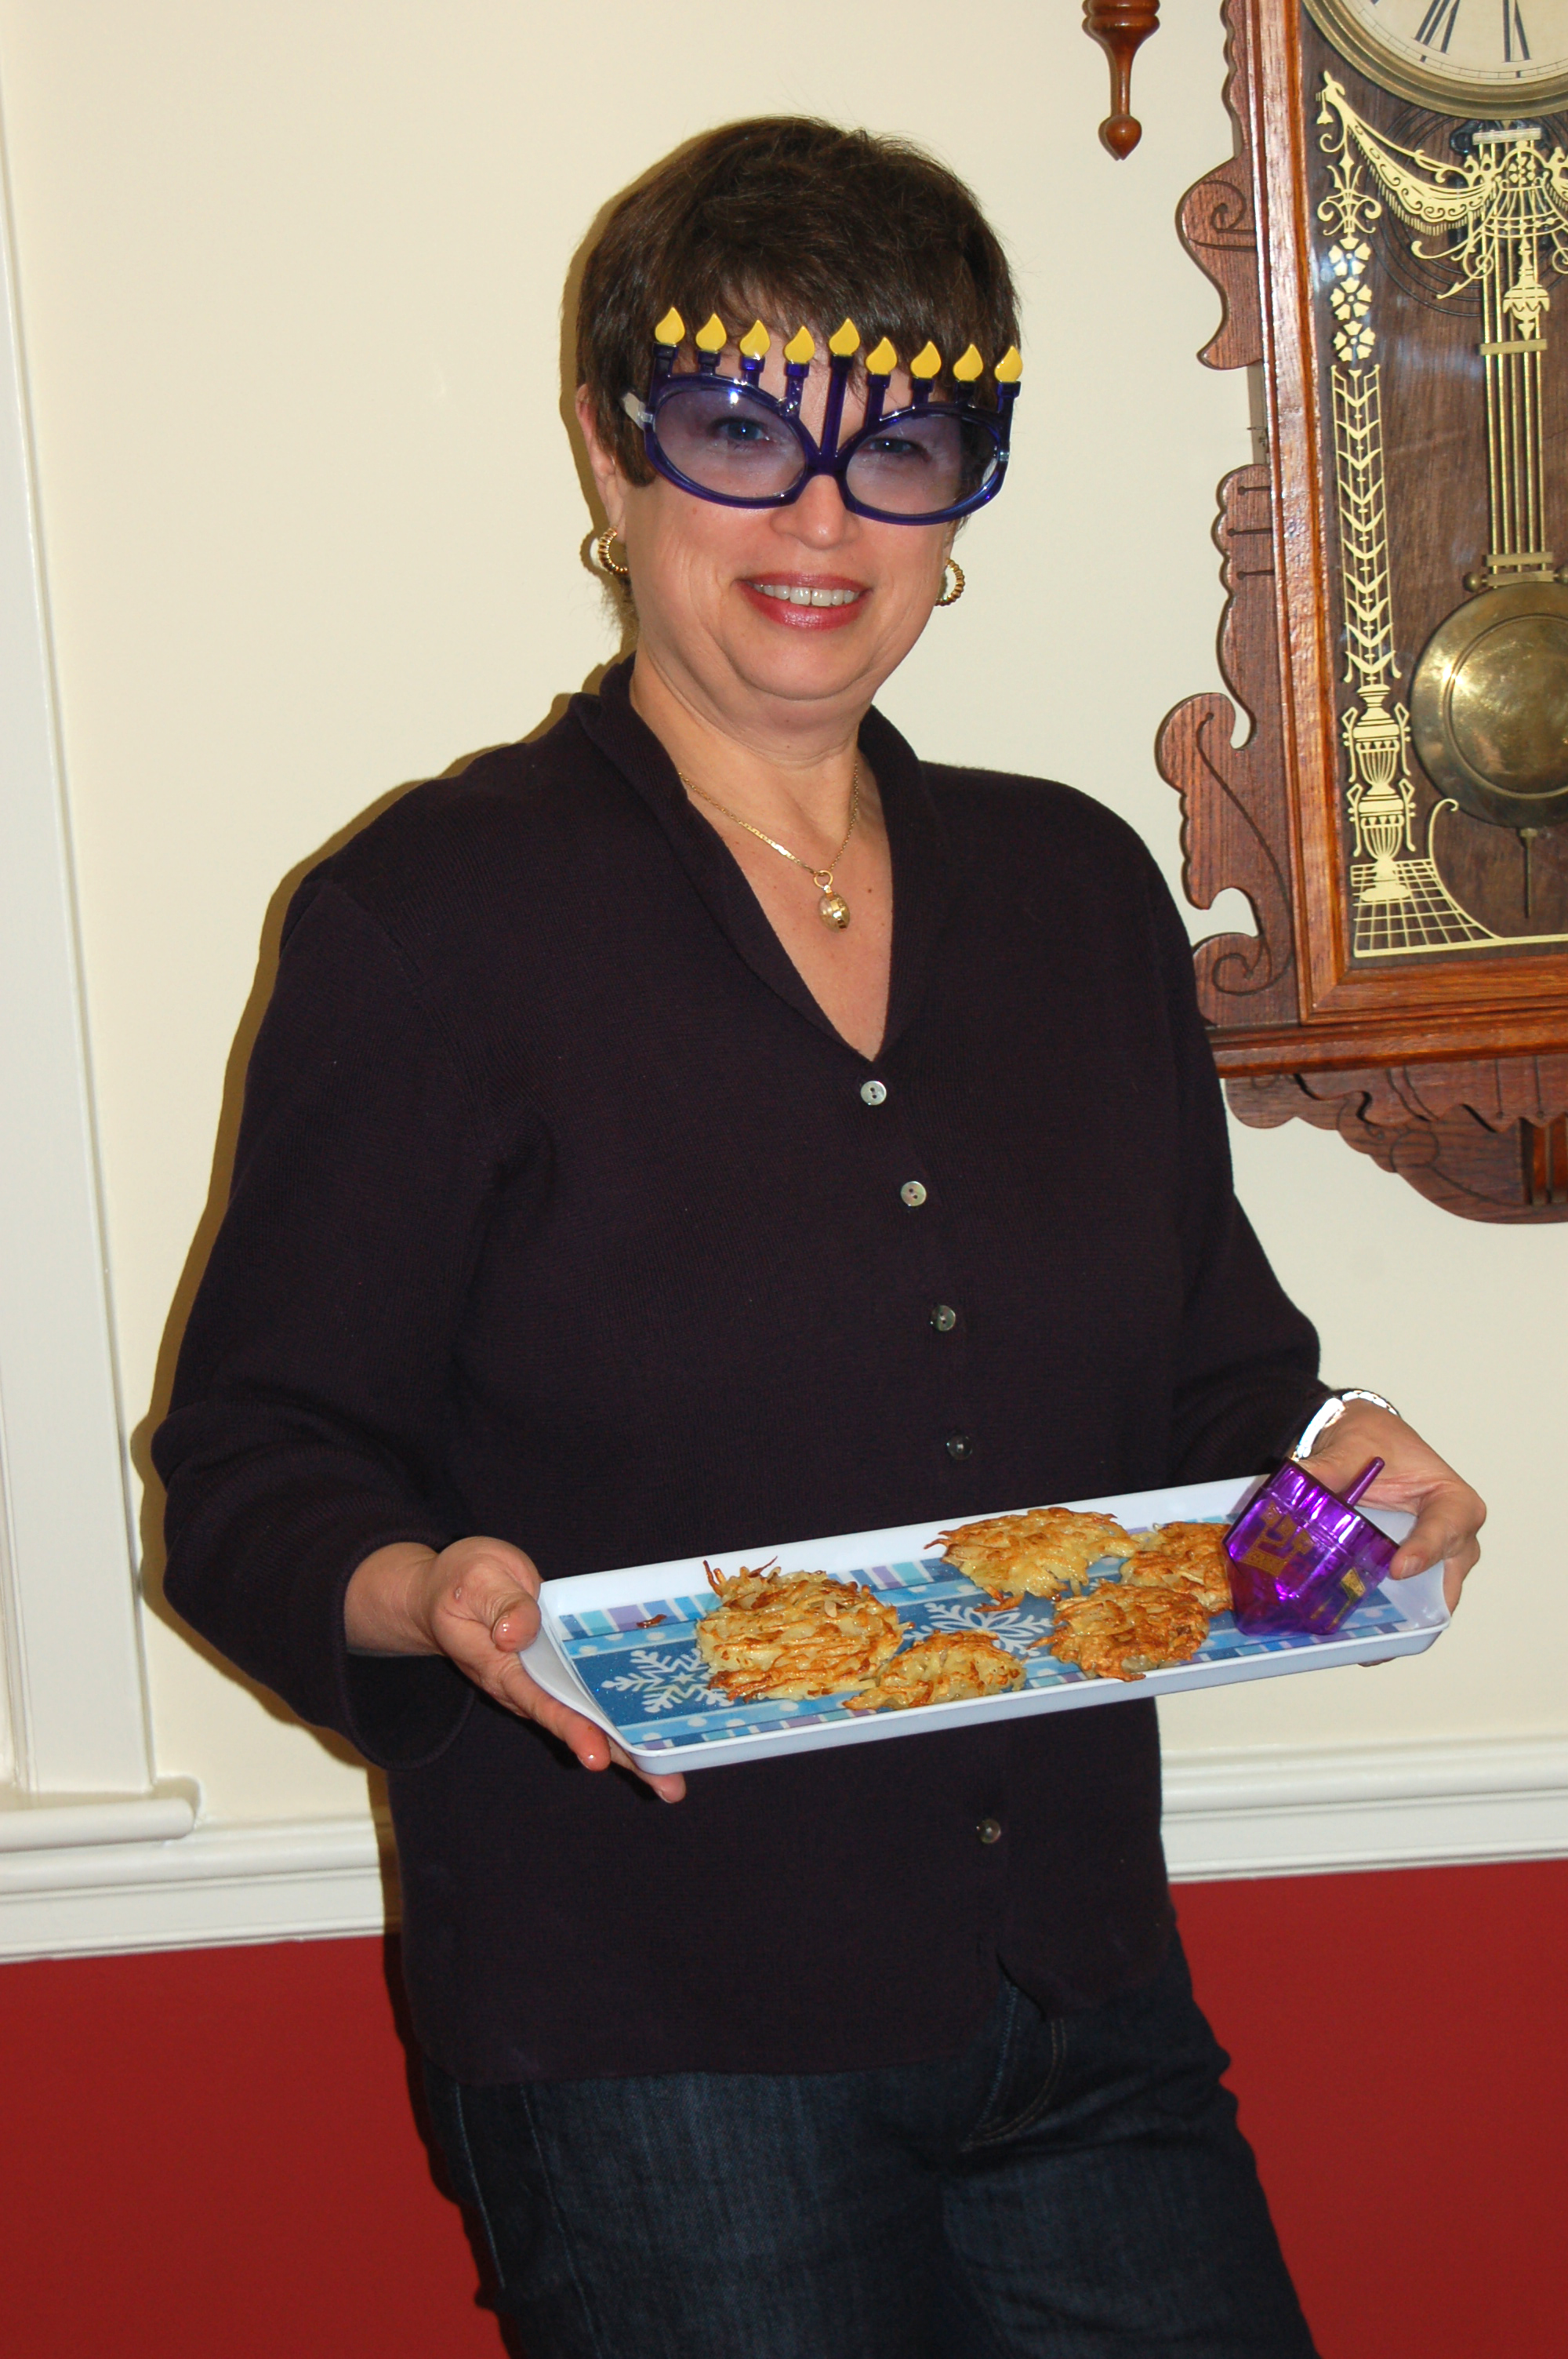 Chic Cousin Jane Shows Off the Latkes